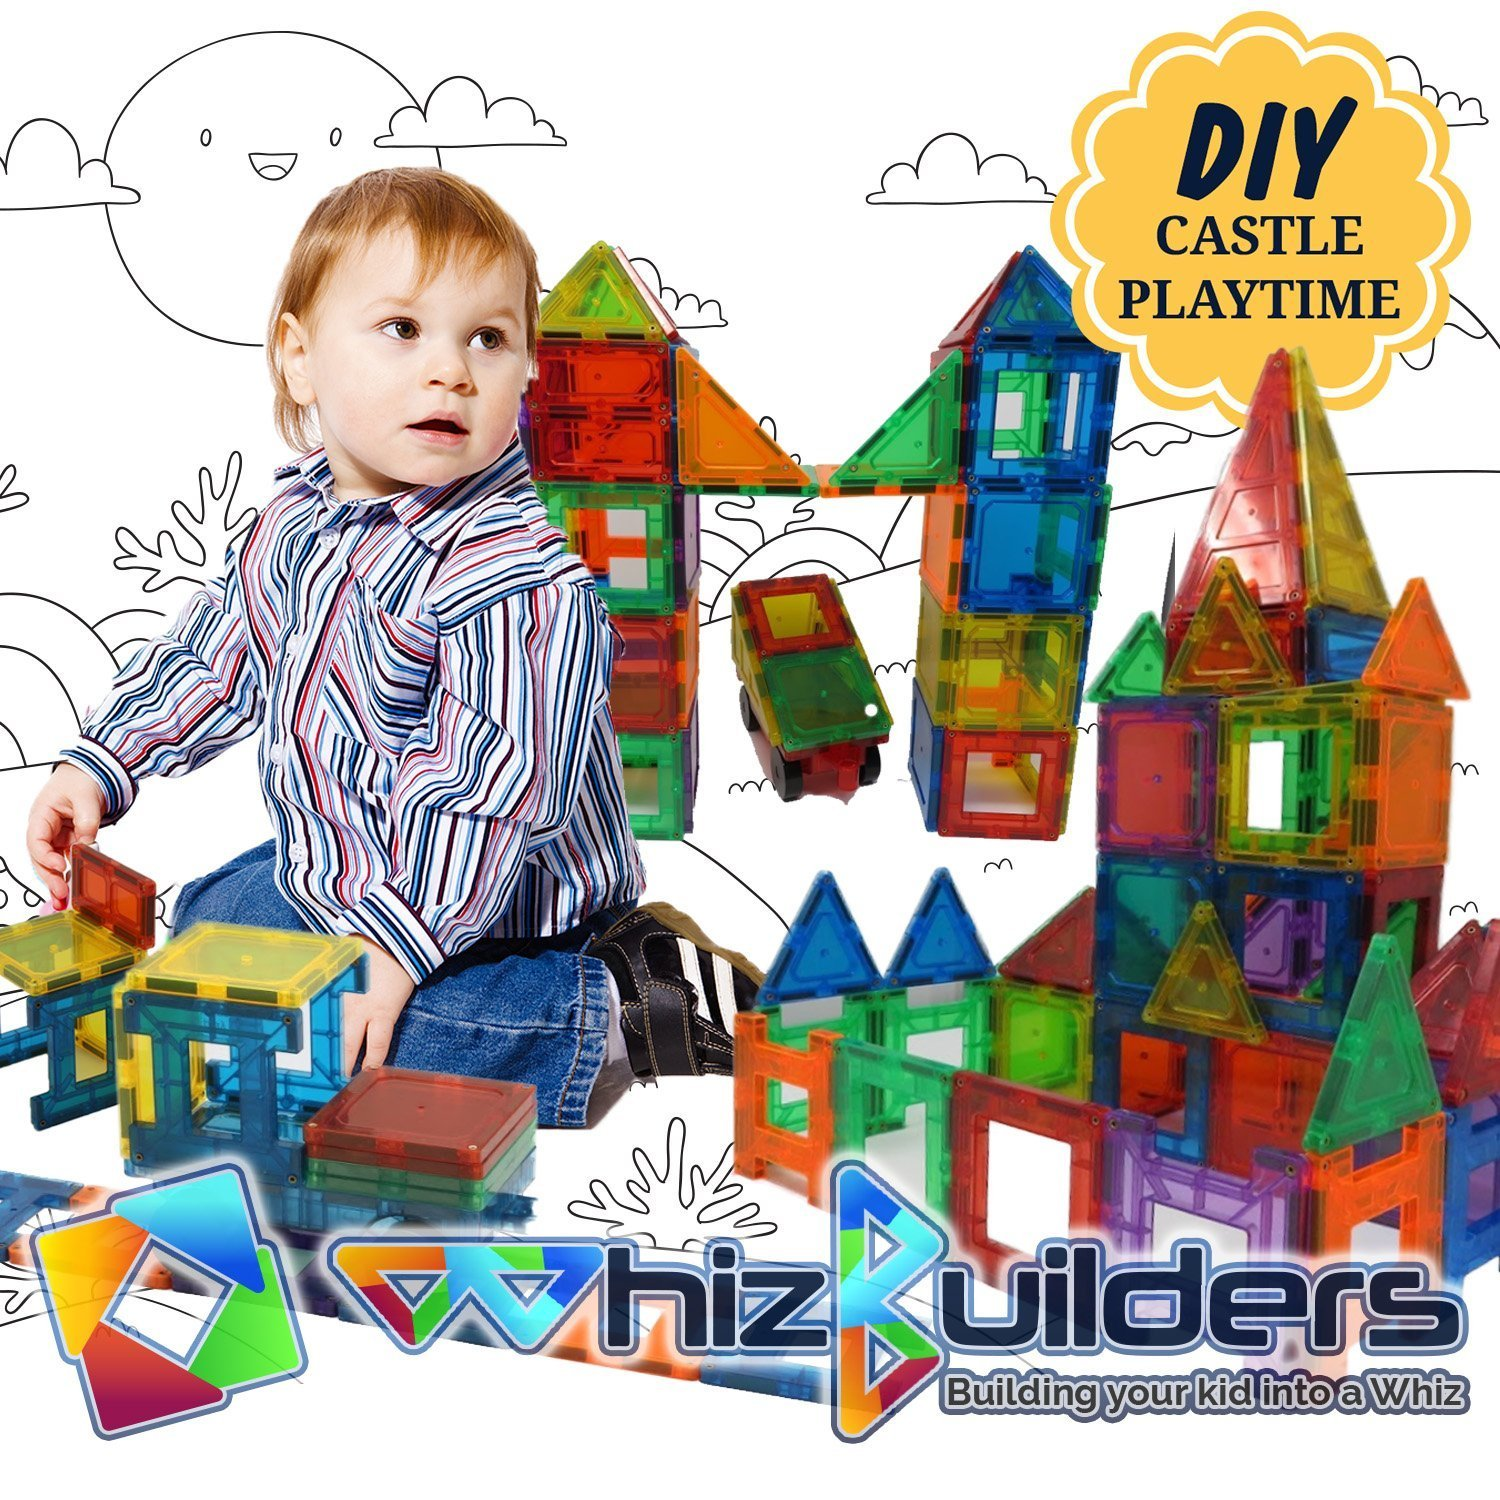 Magnetic Building Tiles Toys Set - Tiles Block Toy Kit for Kids - STEM Educational Construction Stacking Shapes - 60 Pieces by WhizBuilders (Image #5)